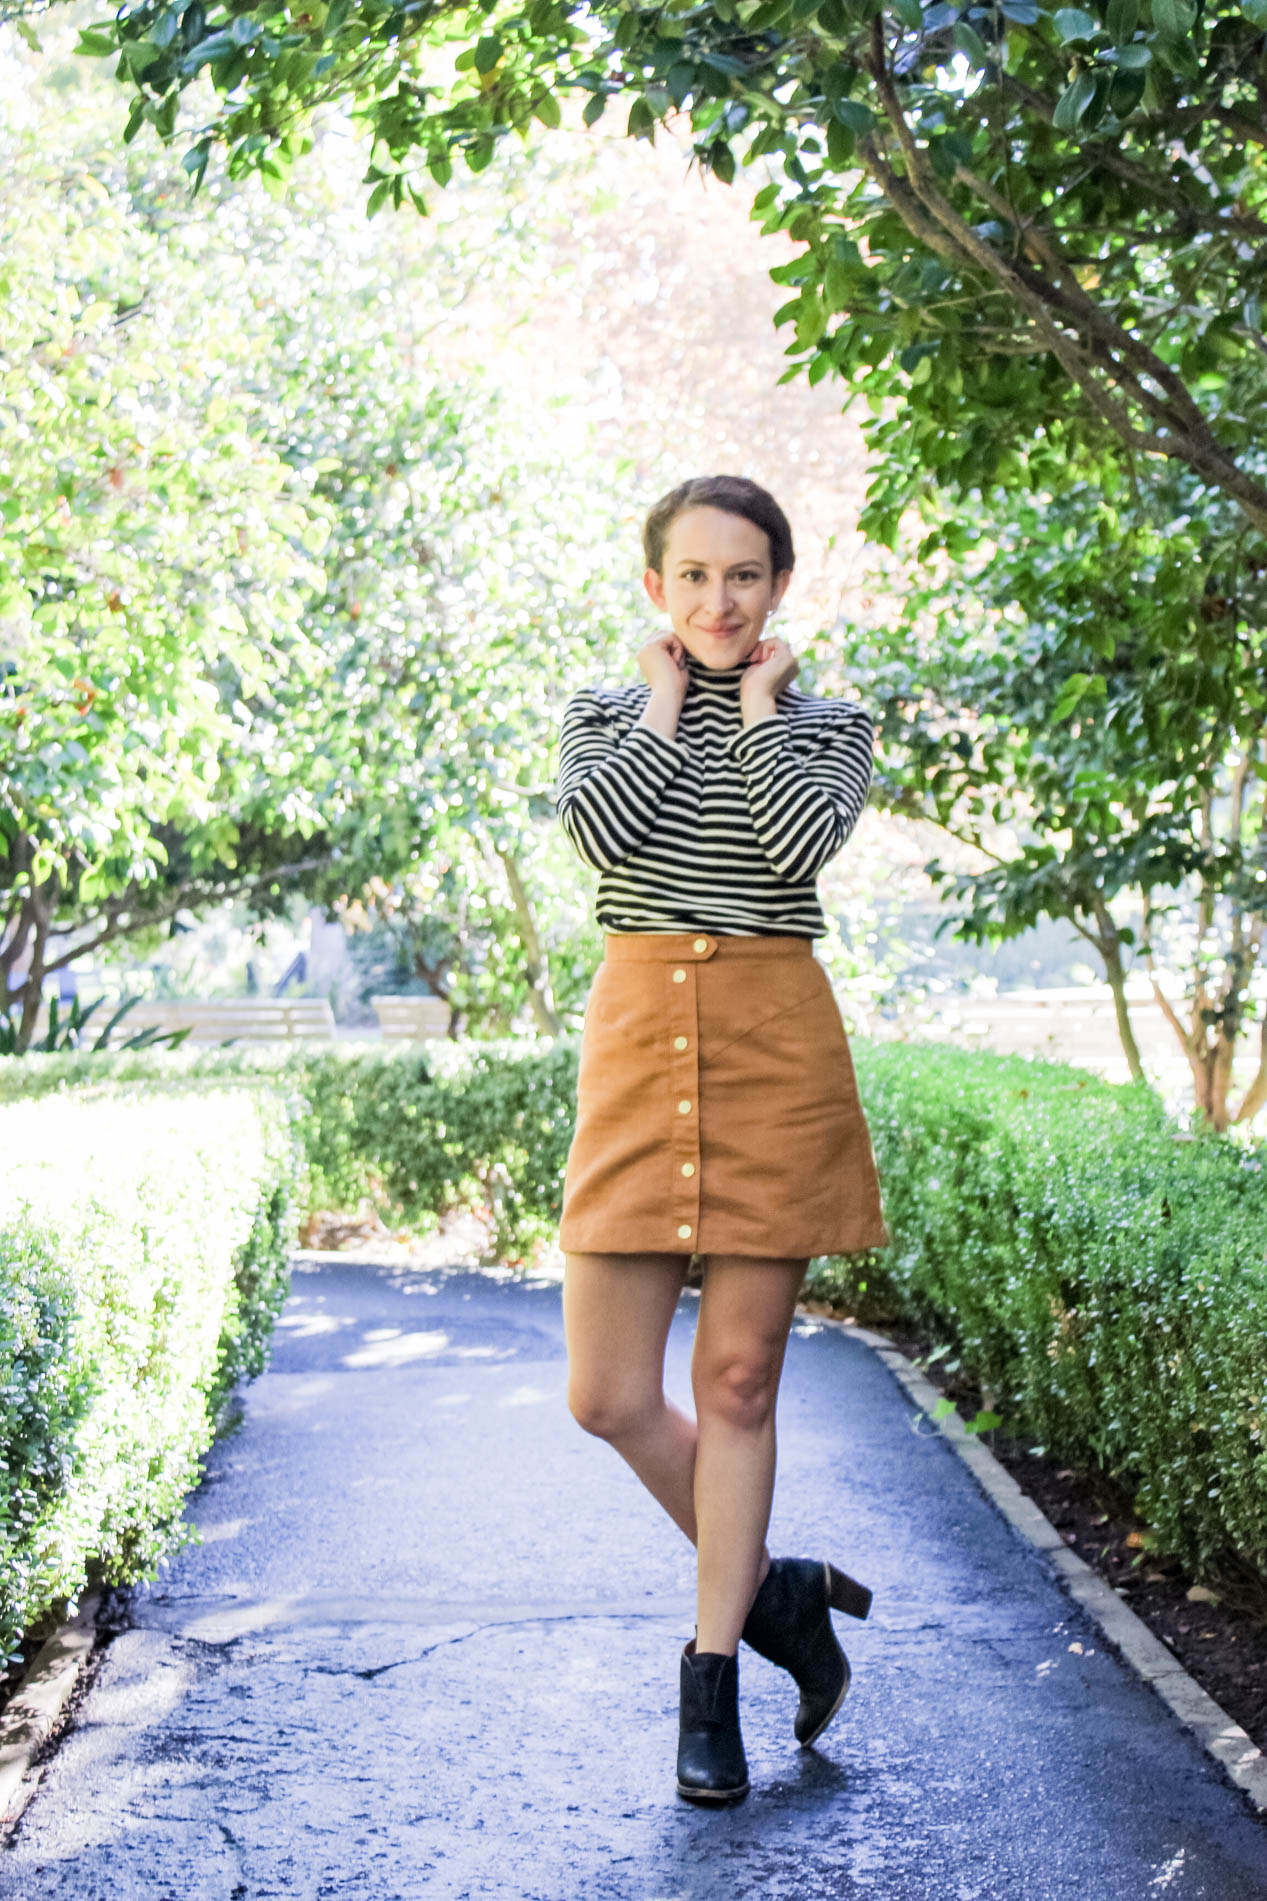 Stripe mockneck top and cognac colored button front skirt outfit | fall capsule wardrobe |tintedgreenblog.com